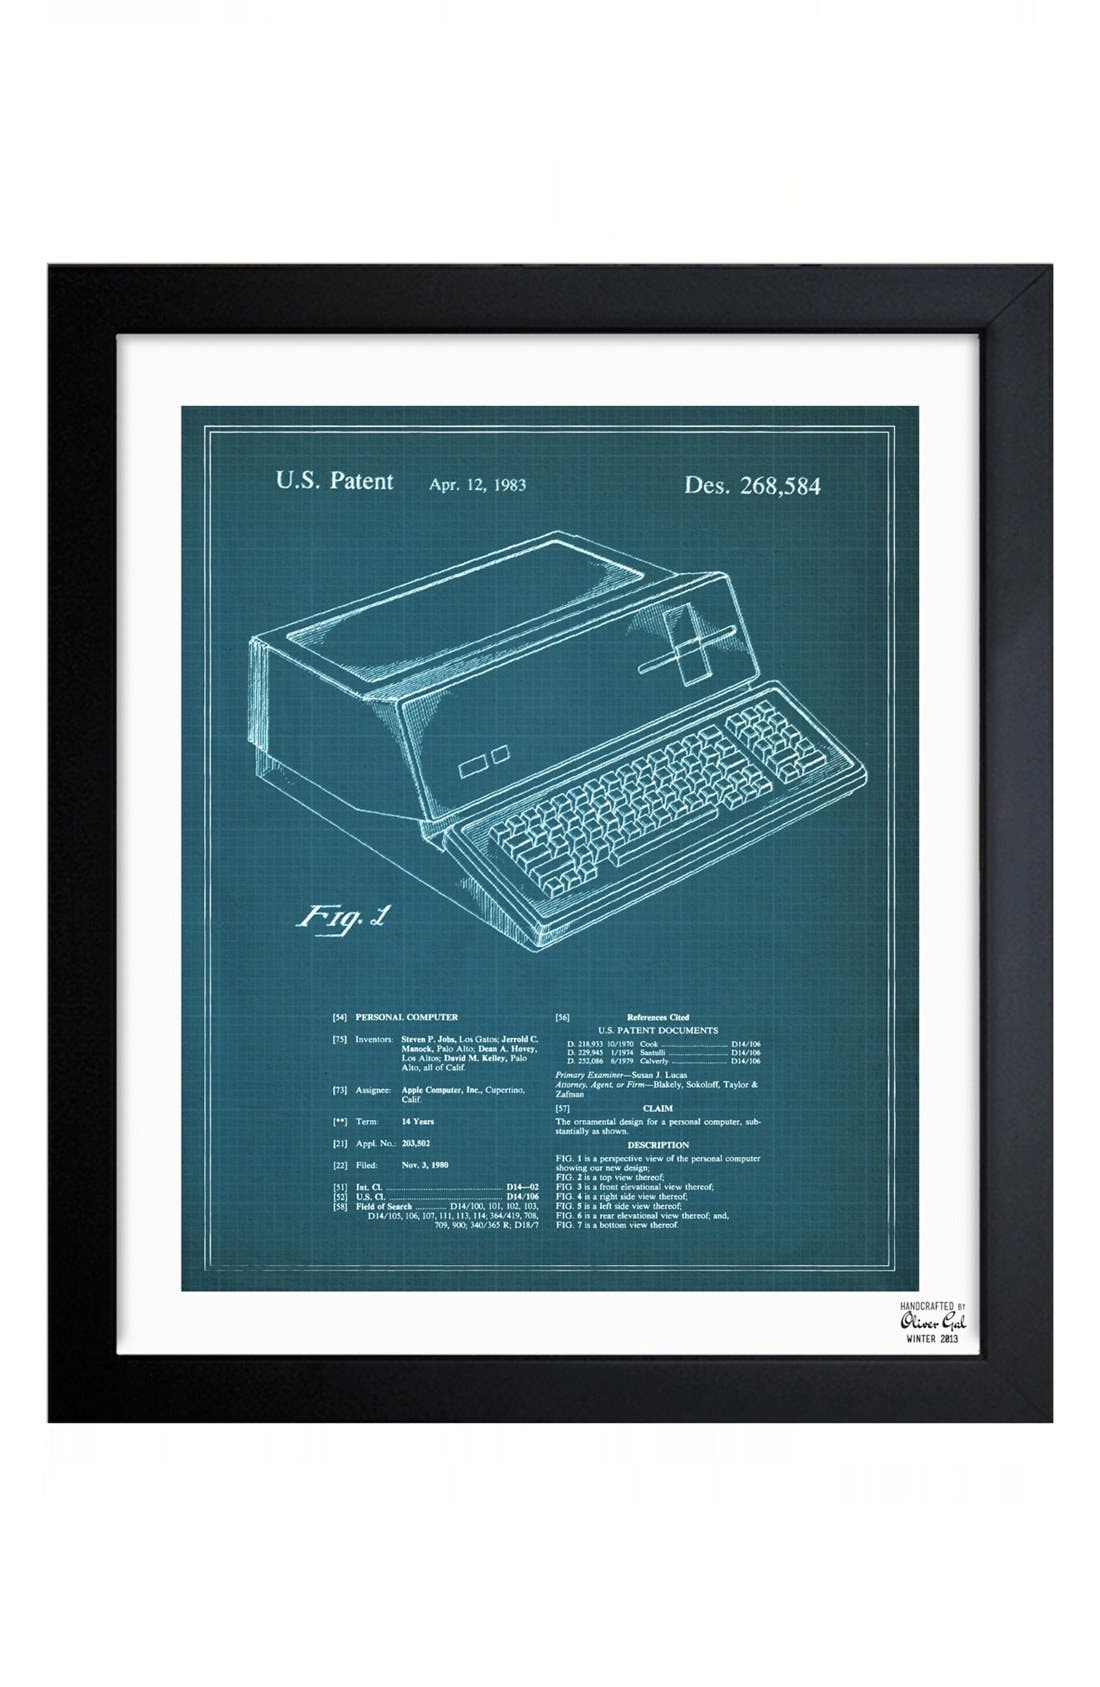 Alternate Image 1 Selected - Oliver Gal 'First Apple™ Personal Computer Blueprint' Framed Print